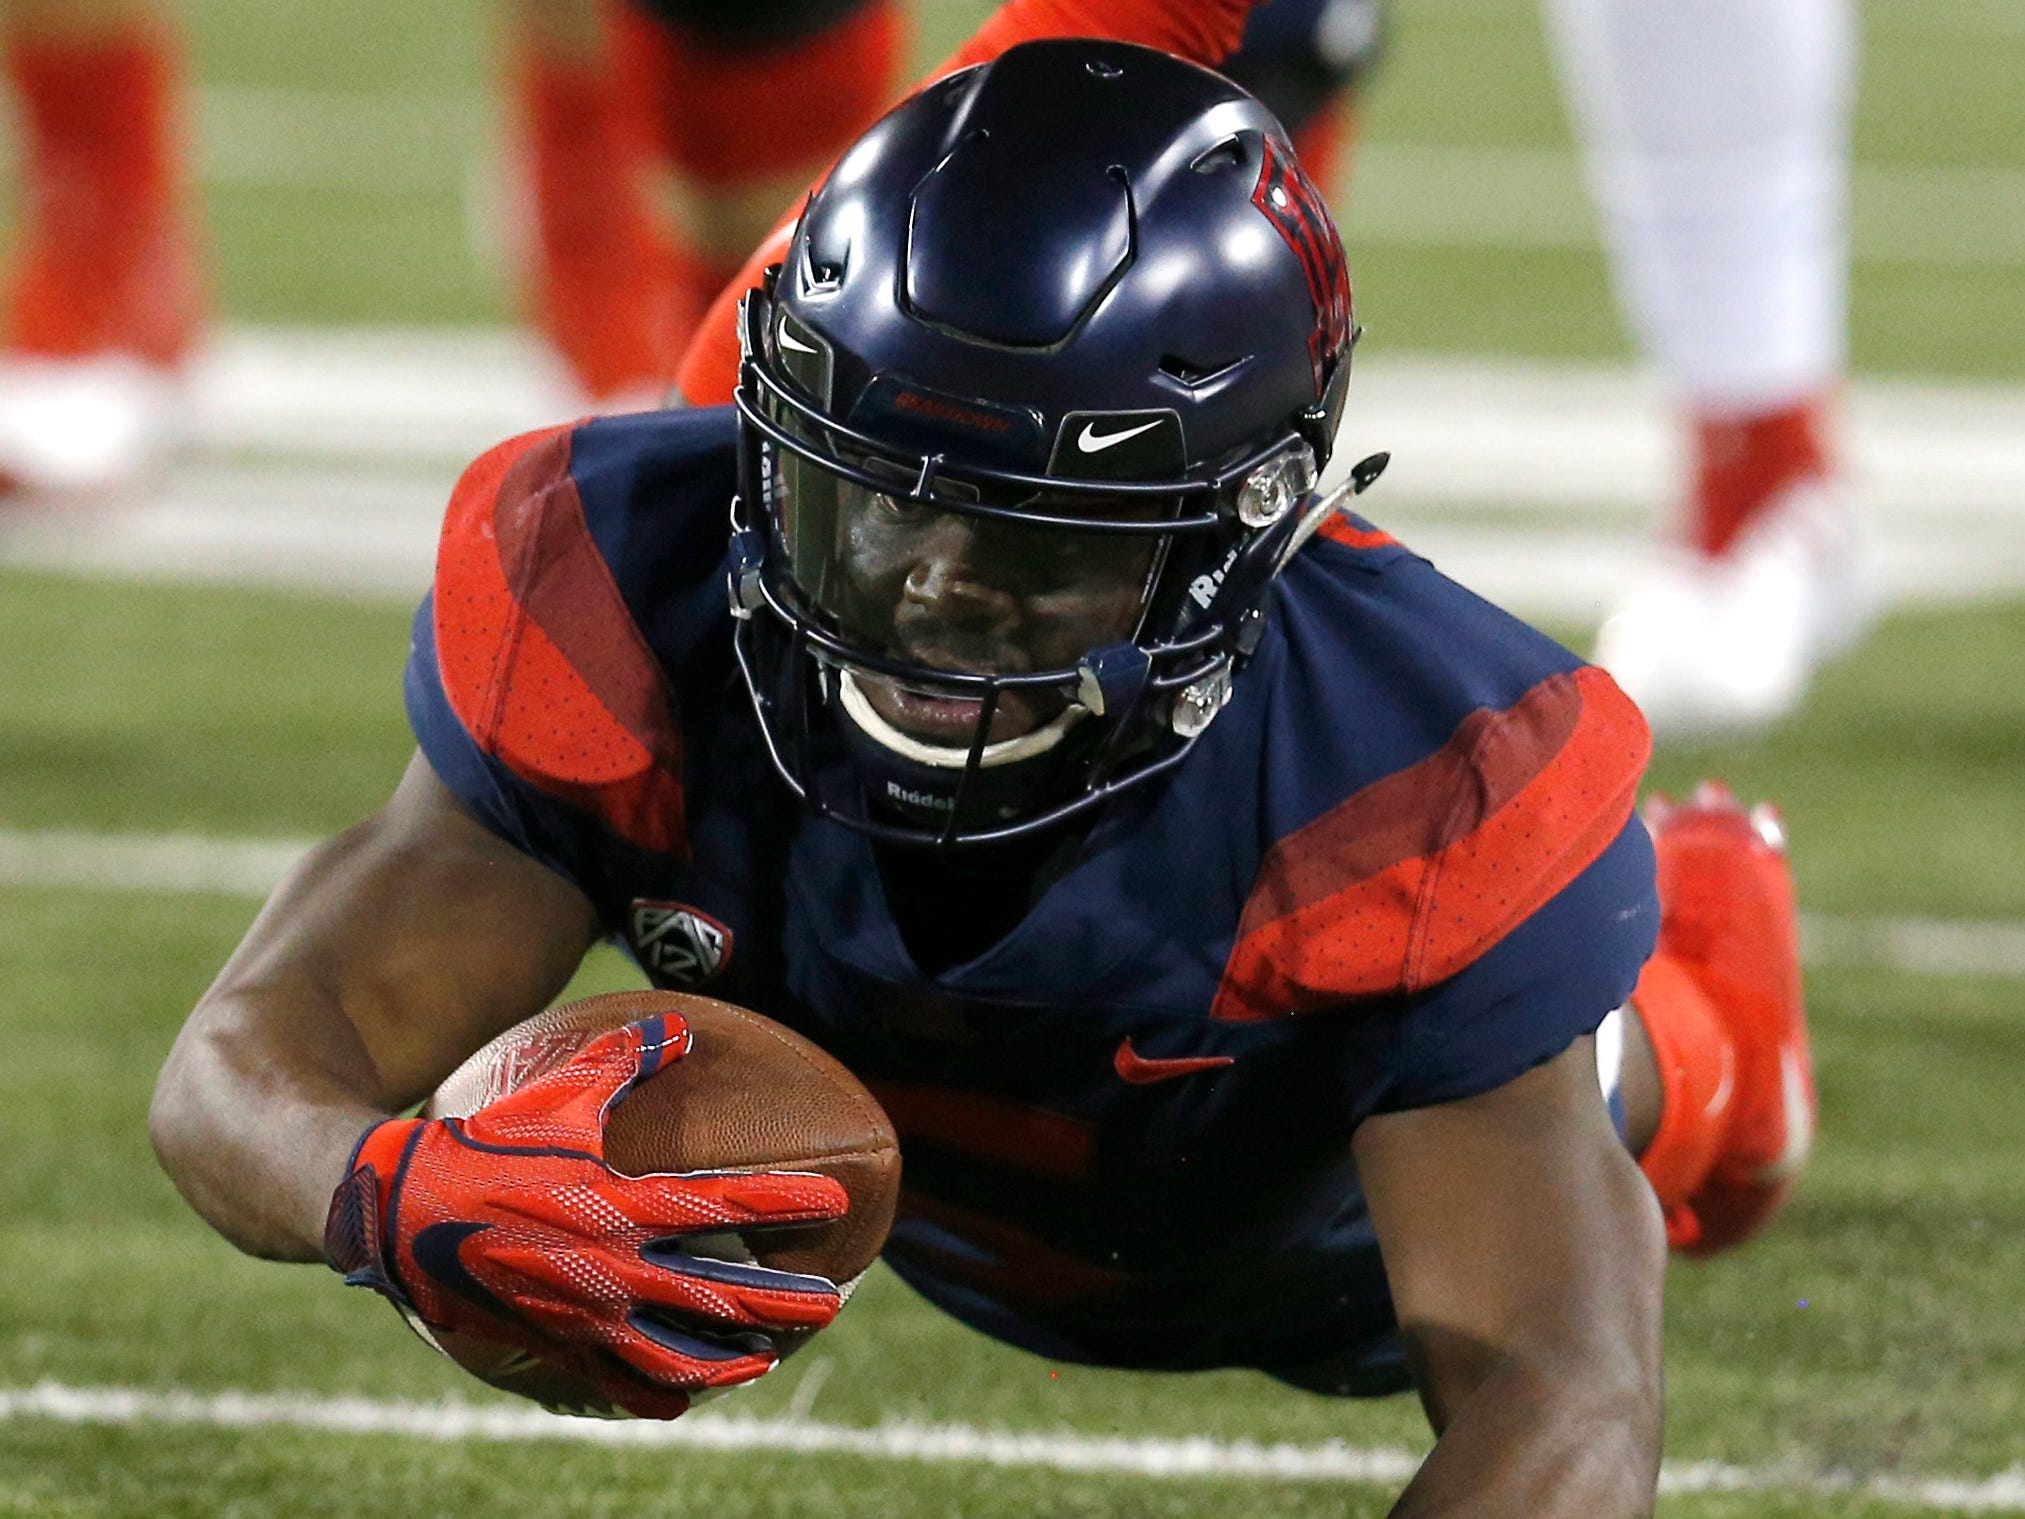 Arizona wide receiver Shun Brown (6) in the first half during an NCAA college football game against Southern Utah, Saturday, Sept. 15, 2018, in Tucson, Ariz. (AP Photo/Rick Scuteri)